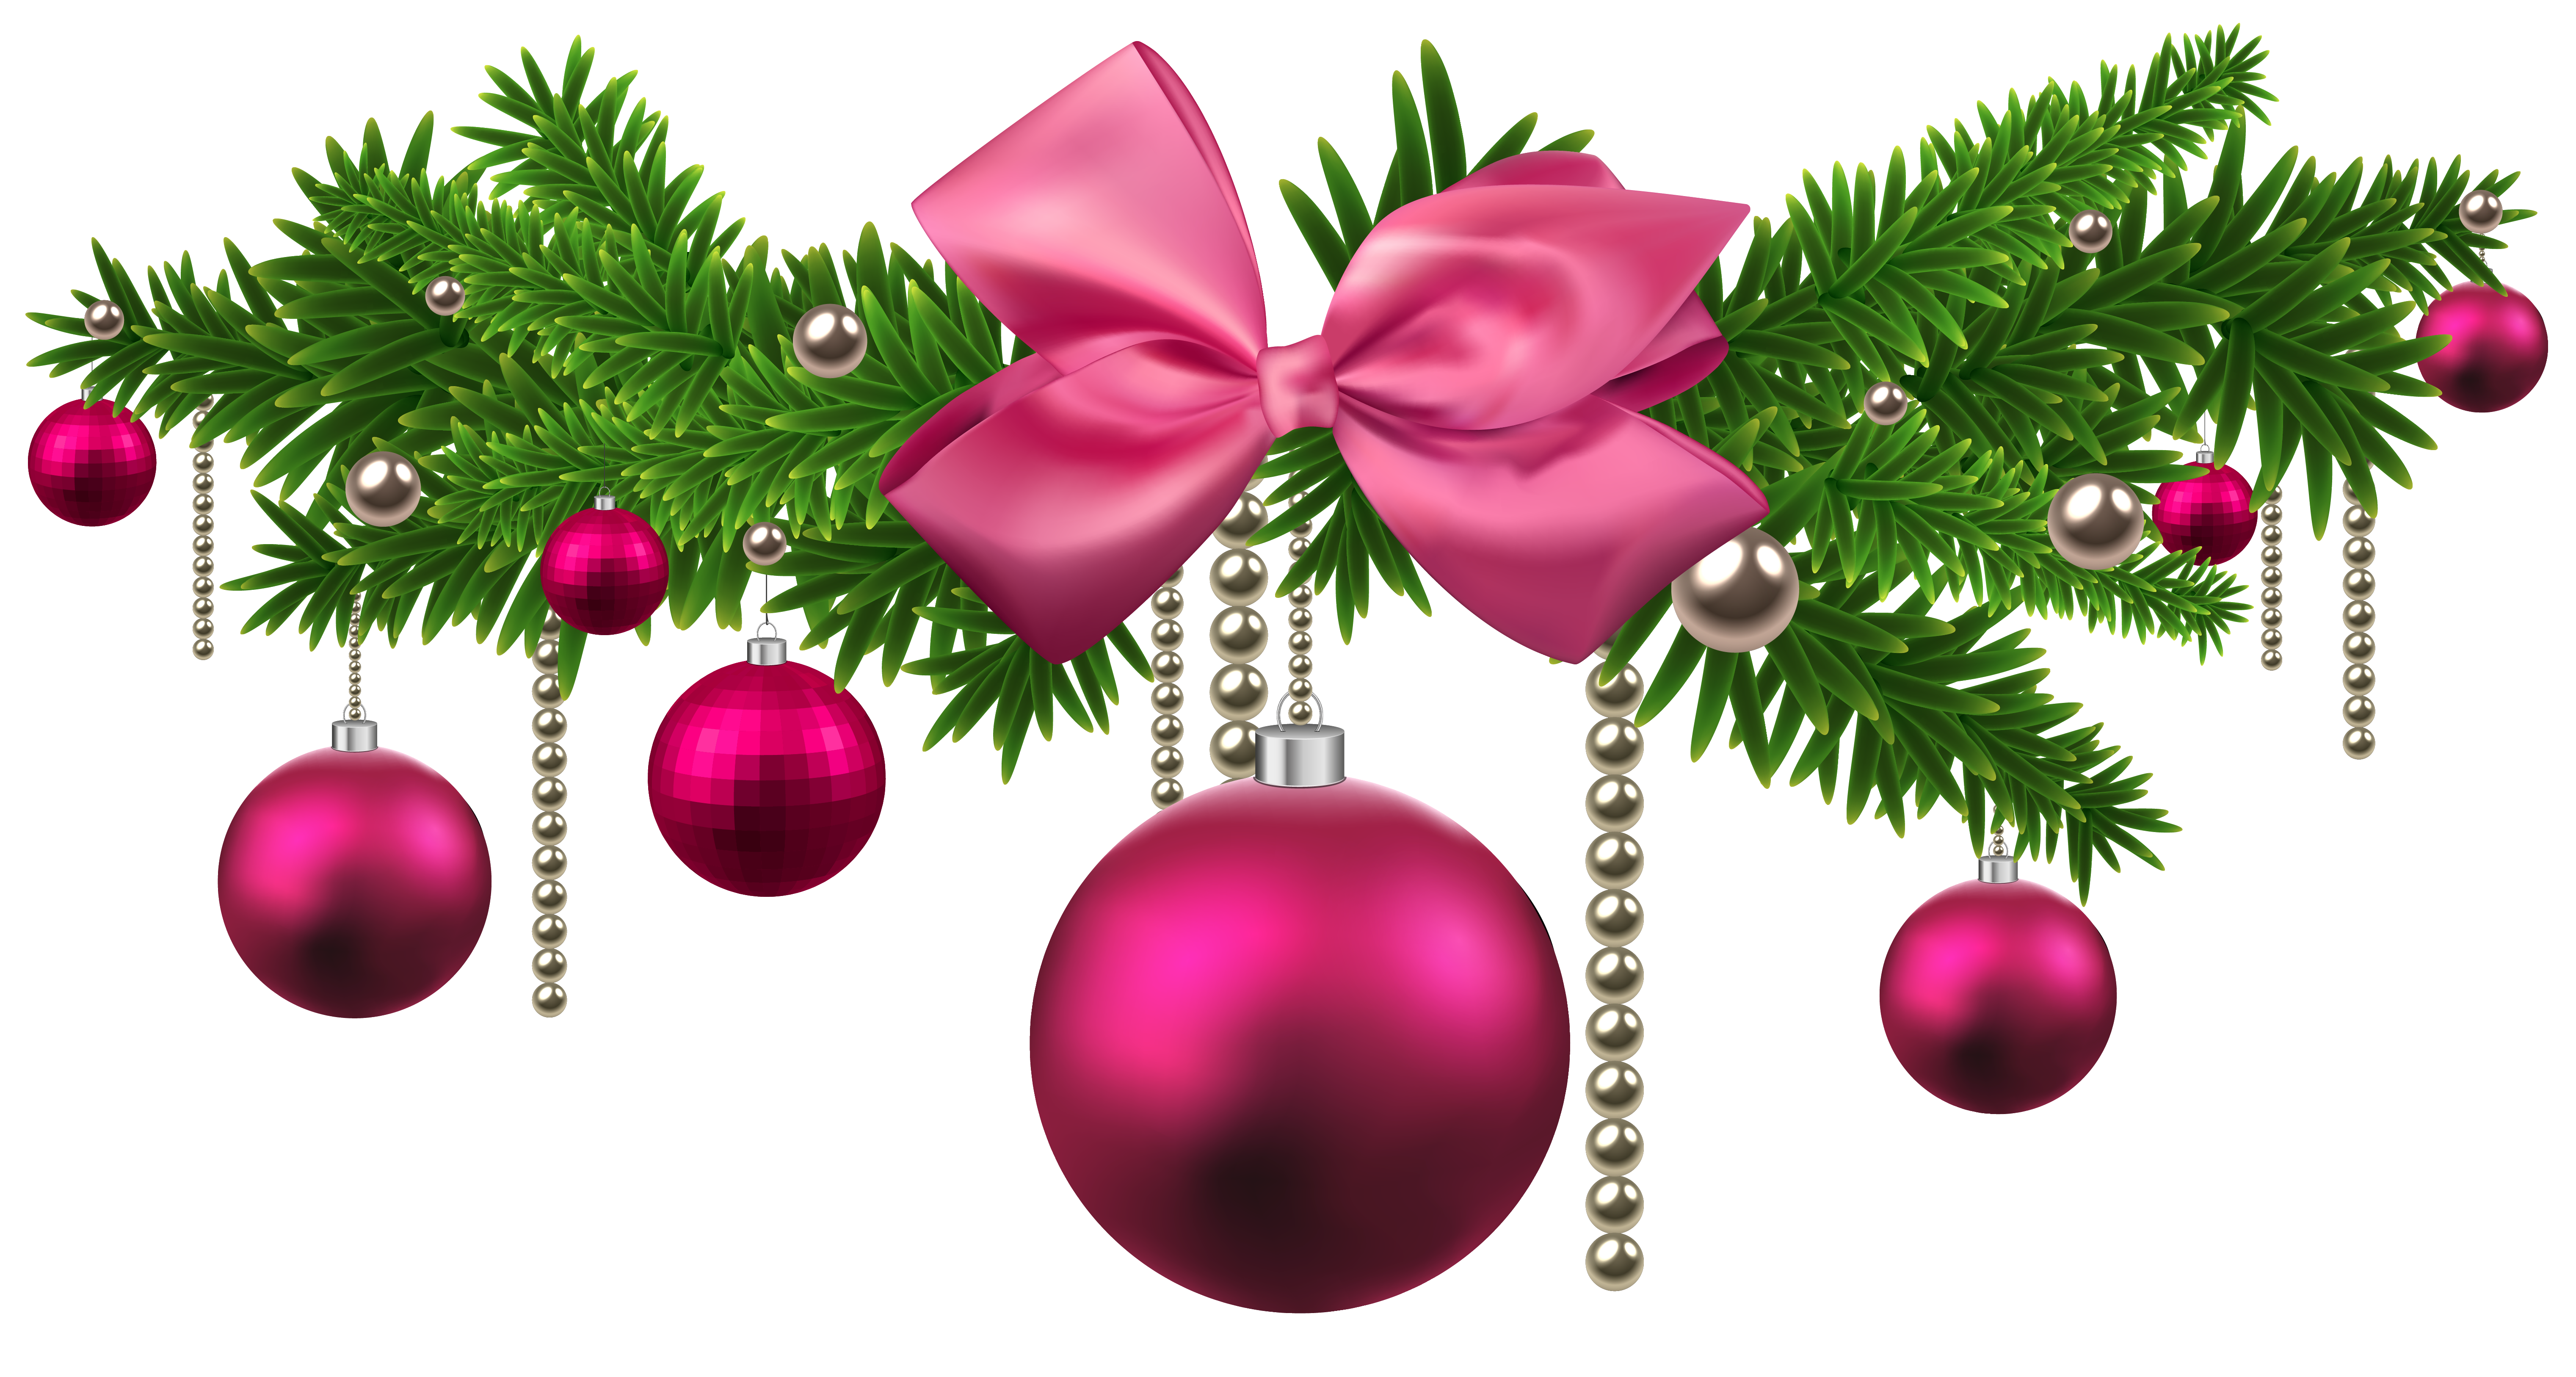 Pink christmas balls png. Decoration clipart cute